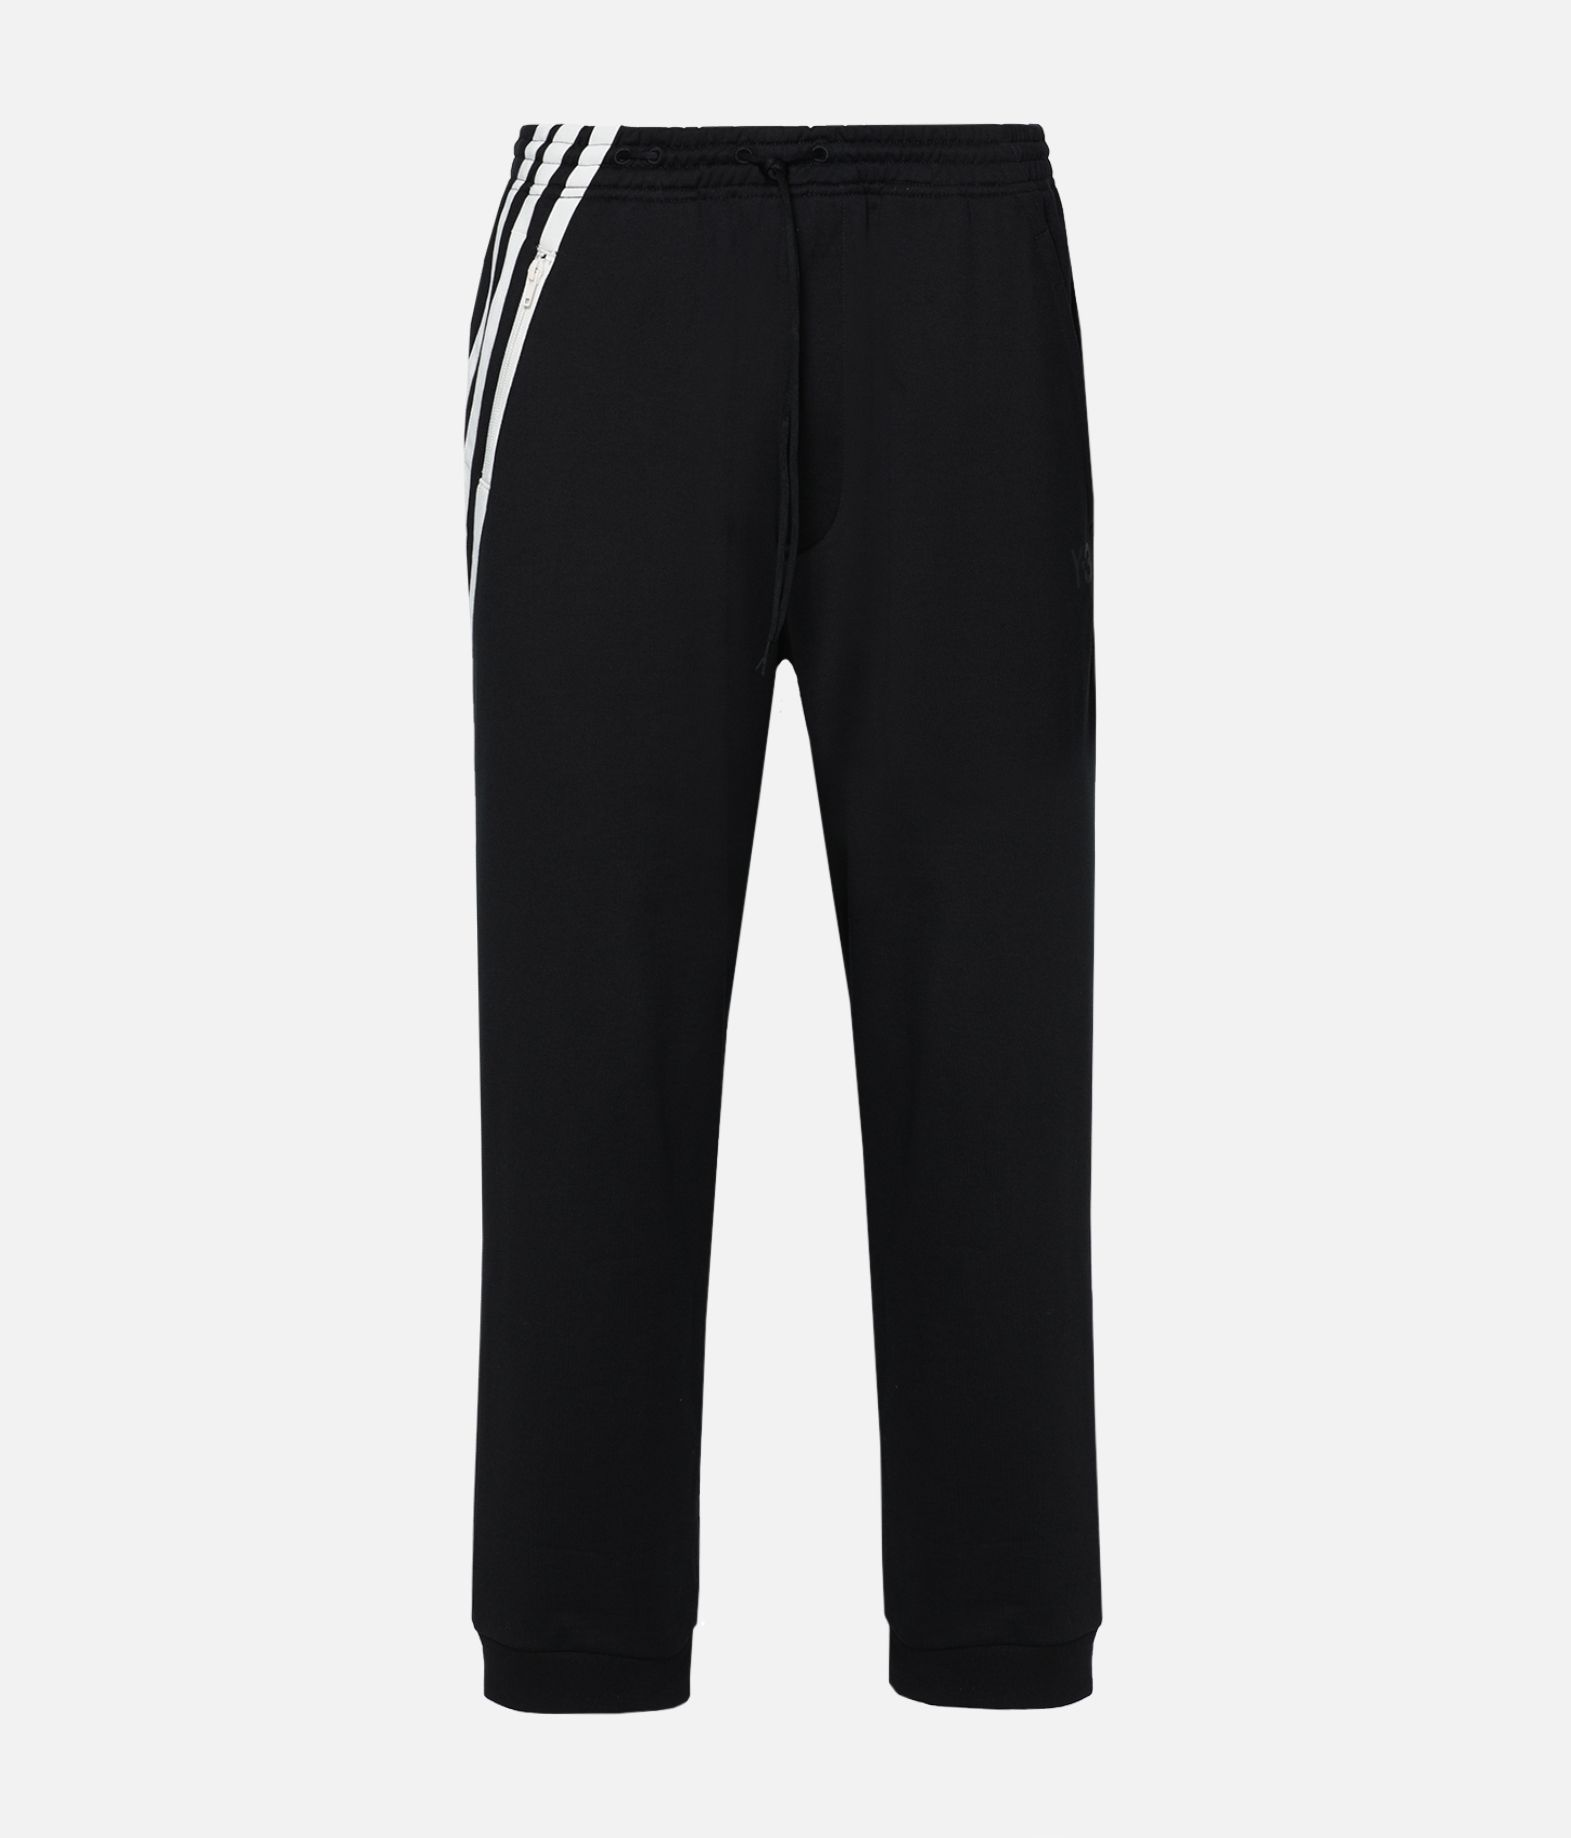 Y-3 Y-3 3-Stripes Cuff Pants Casual pants Man f